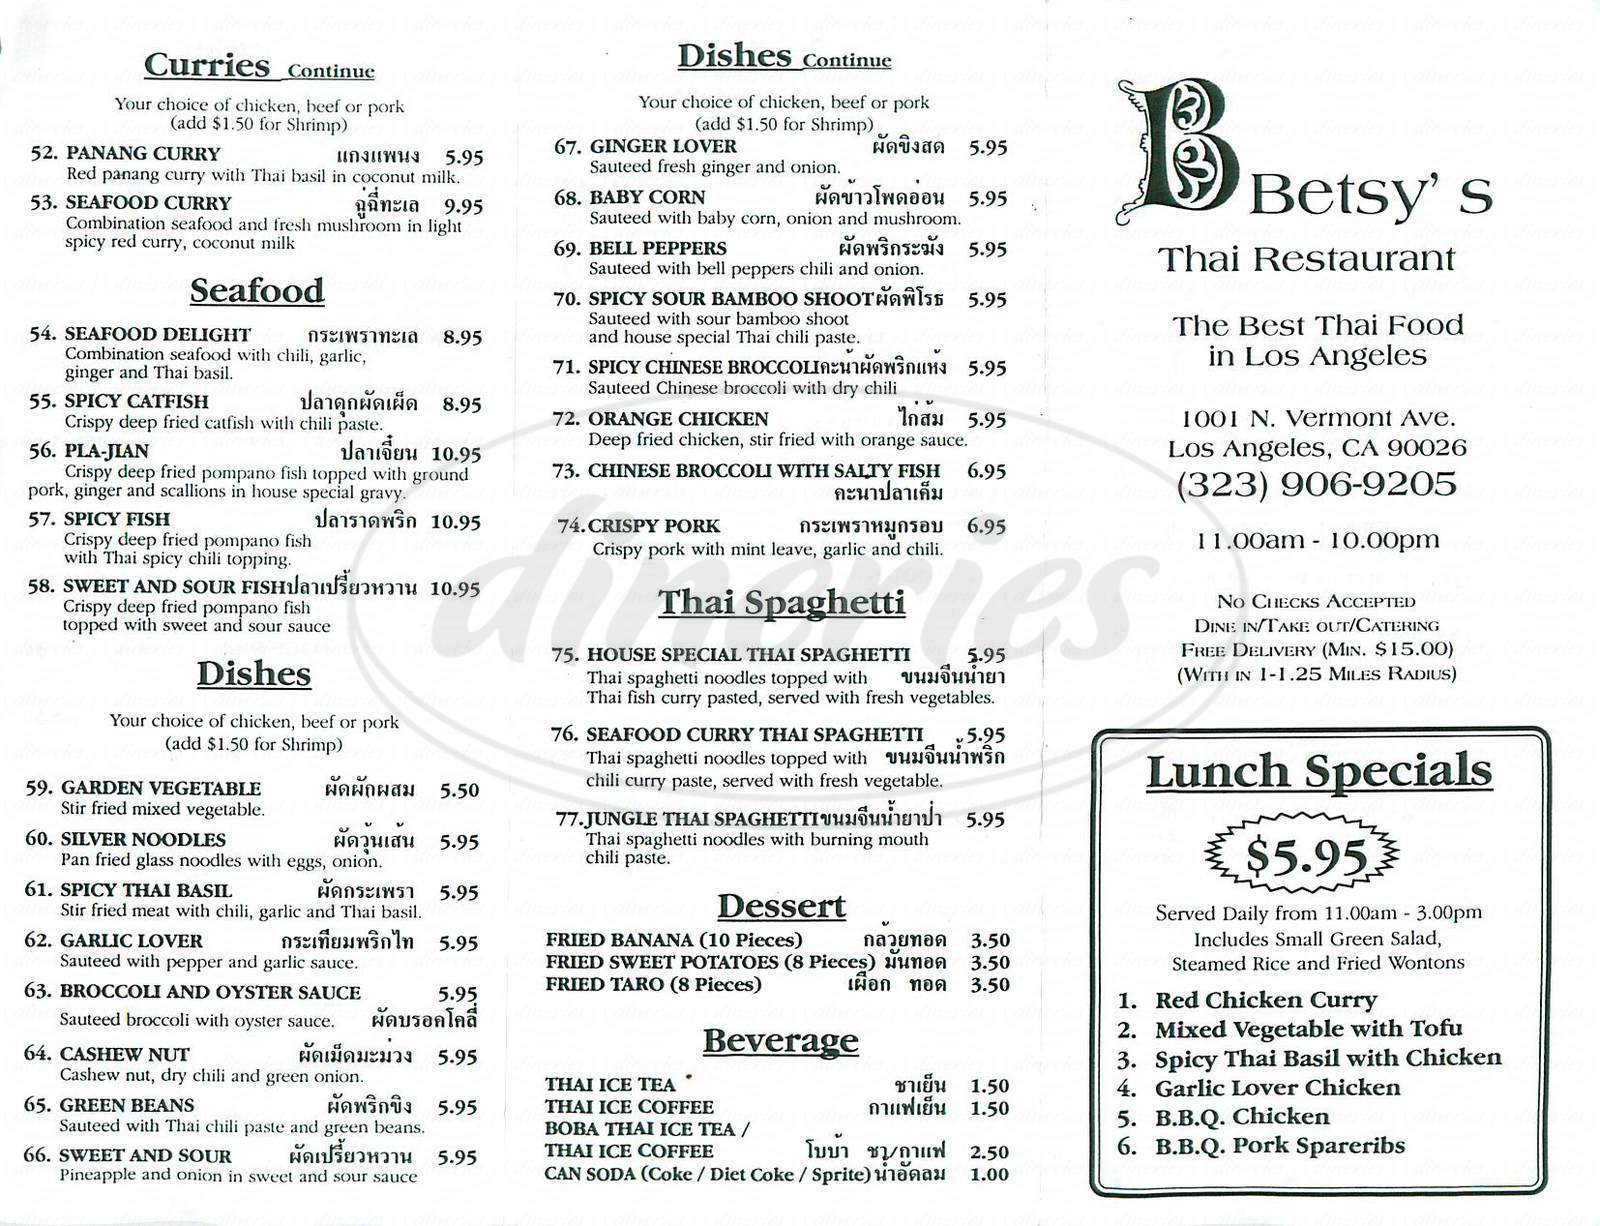 menu for Betsy's Thai Restaurant